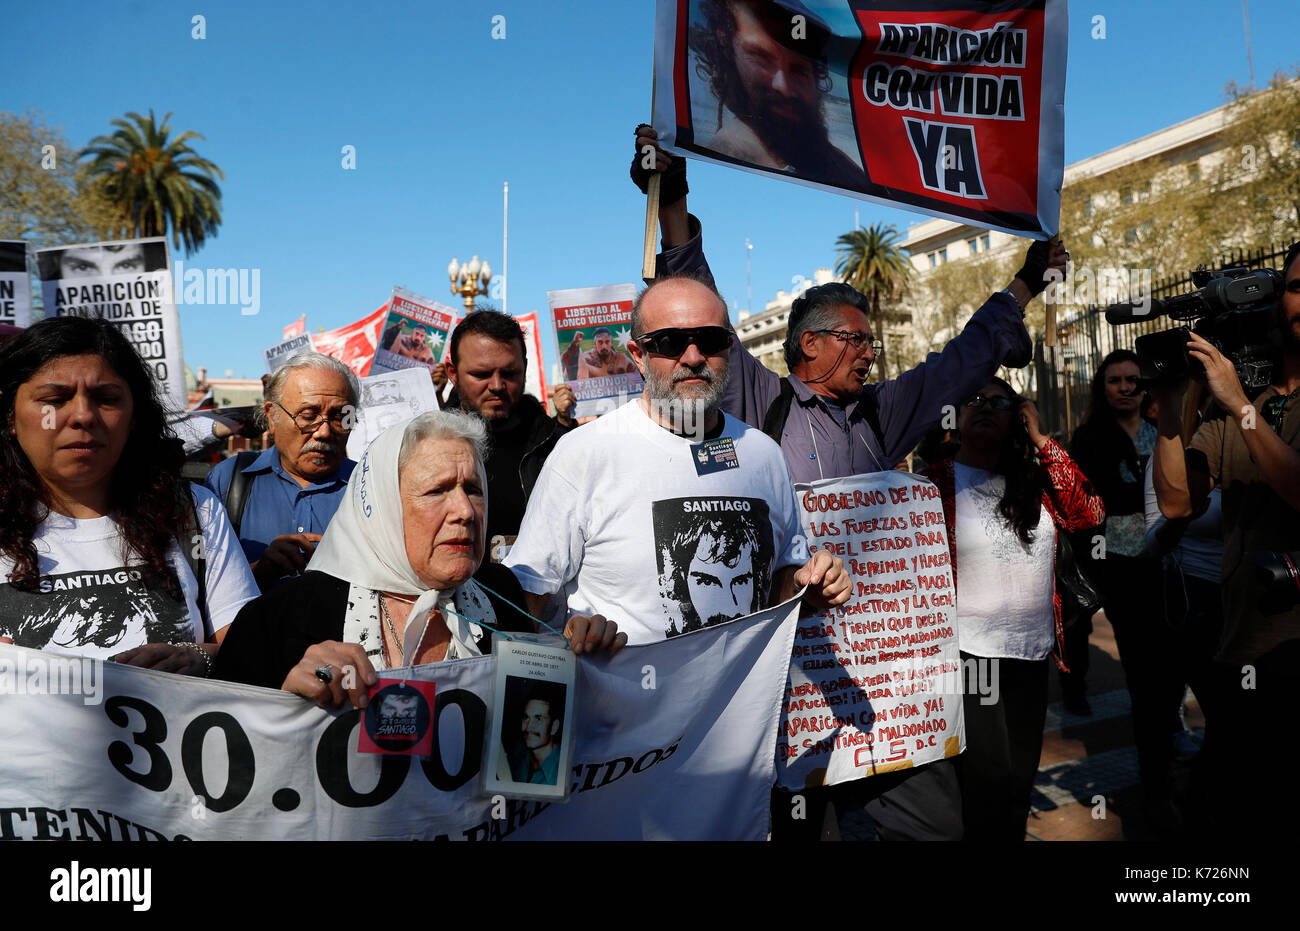 Sergio Maldonado (C-R) brother of young activist Santiago Maldonado, and Nora Cortinas (C-L) member of Mothers of the May Square Founding Line, participate in the traditional weekly protest against forced disappearance in Buenos Aires, Argentina, 14 September 2017. The news that the young artisan who protested for the 'mapuches' went missing got out a month ago. EFE/David Fernandez - Stock Image